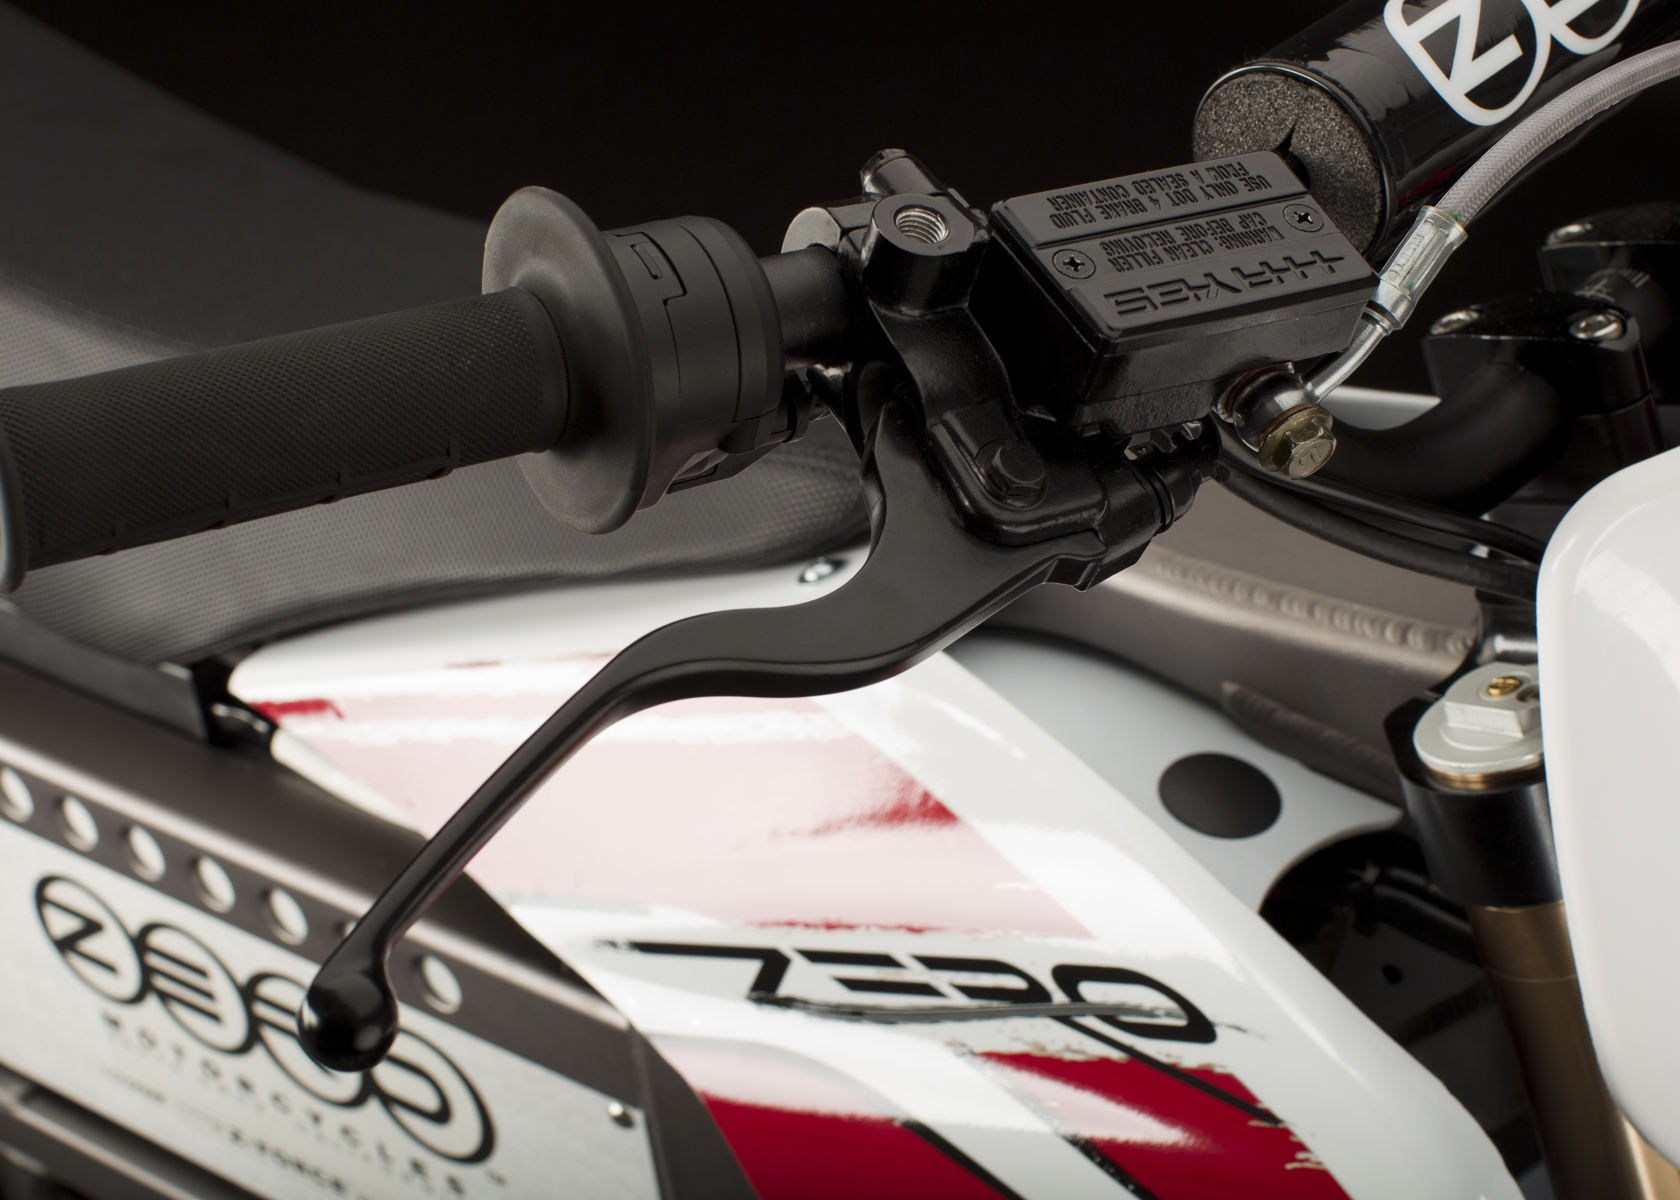 2011 Zero MX Electric Motorcycle: Front Hand Brake